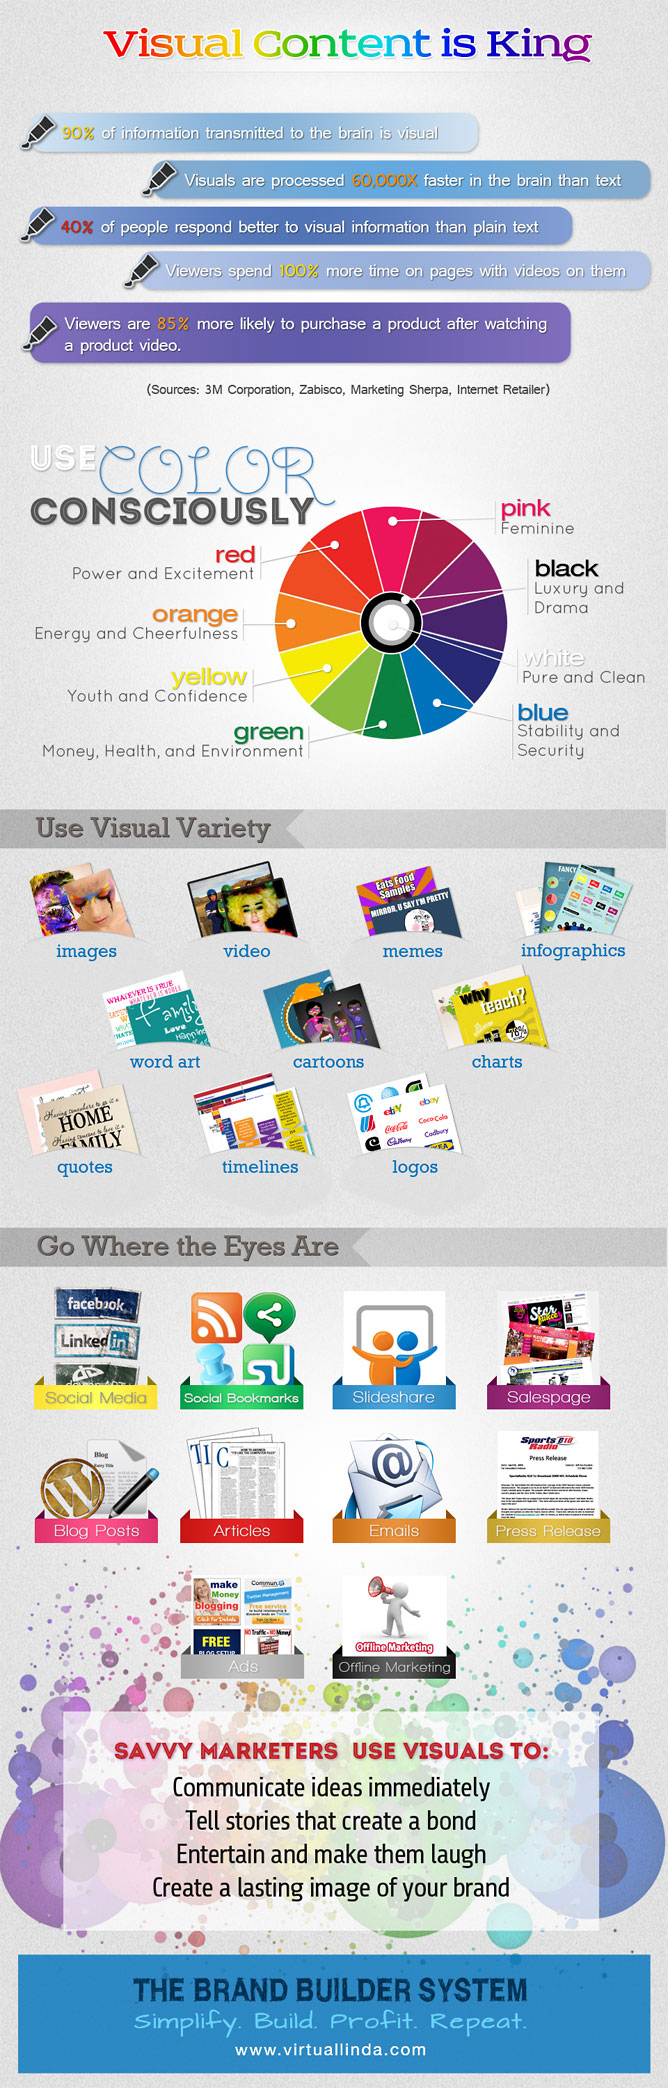 Why Visual Content is King [Infographic]